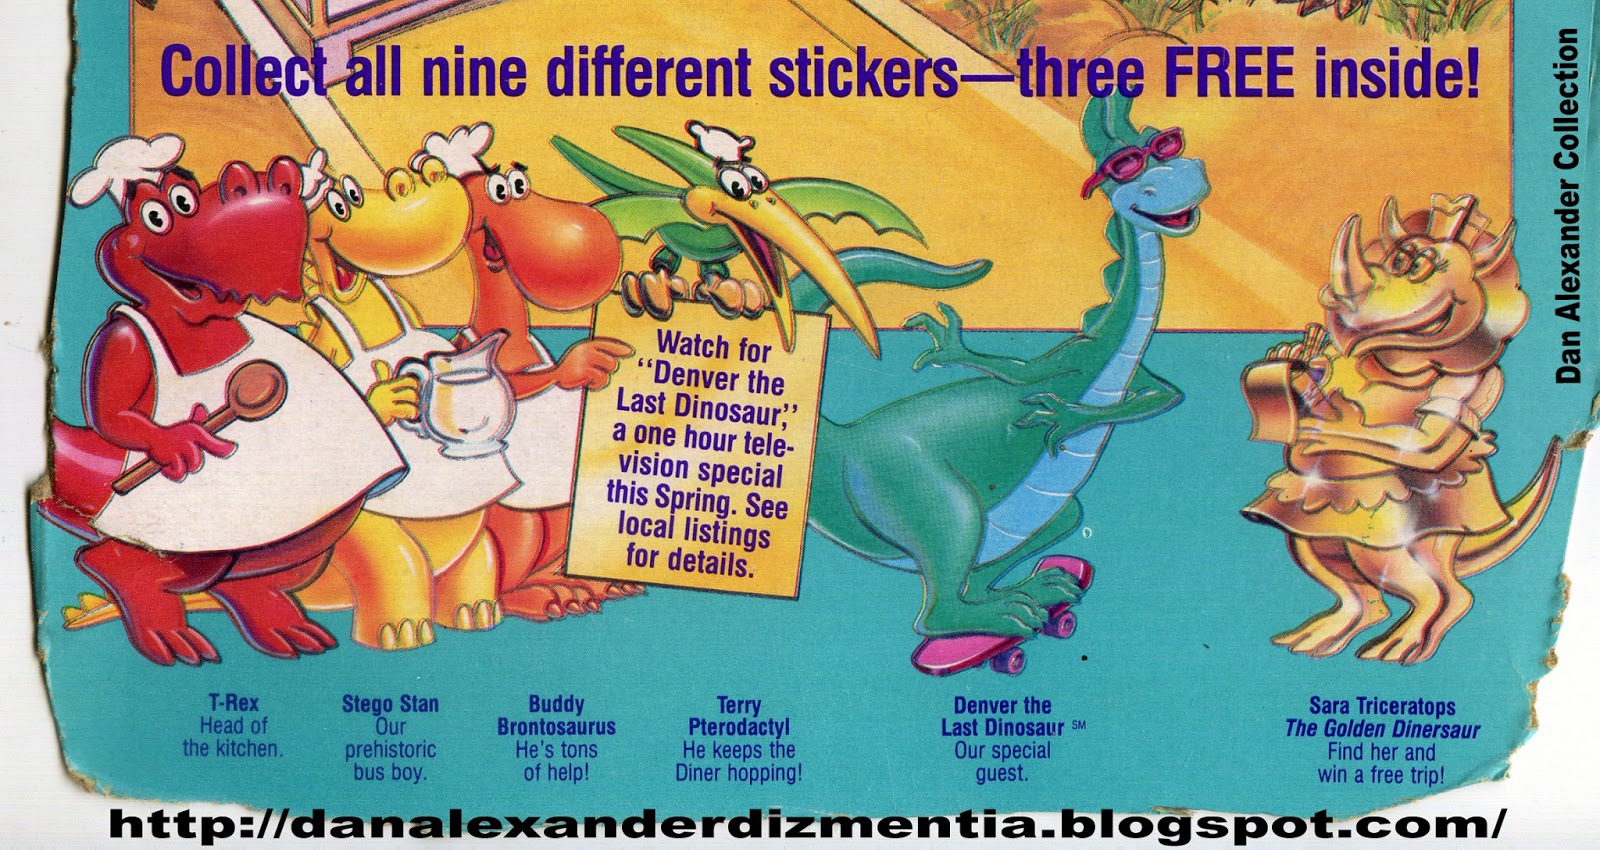 18366310952330457 furthermore Clipart Purple Bowl in addition Episode 149 Denver The Last Dinosaur likewise 14 Essential Tutorials On How To Create Logos With Illustrator likewise Junk Food Monsters Will Haunt Your Nightmares. on cartoon cereal